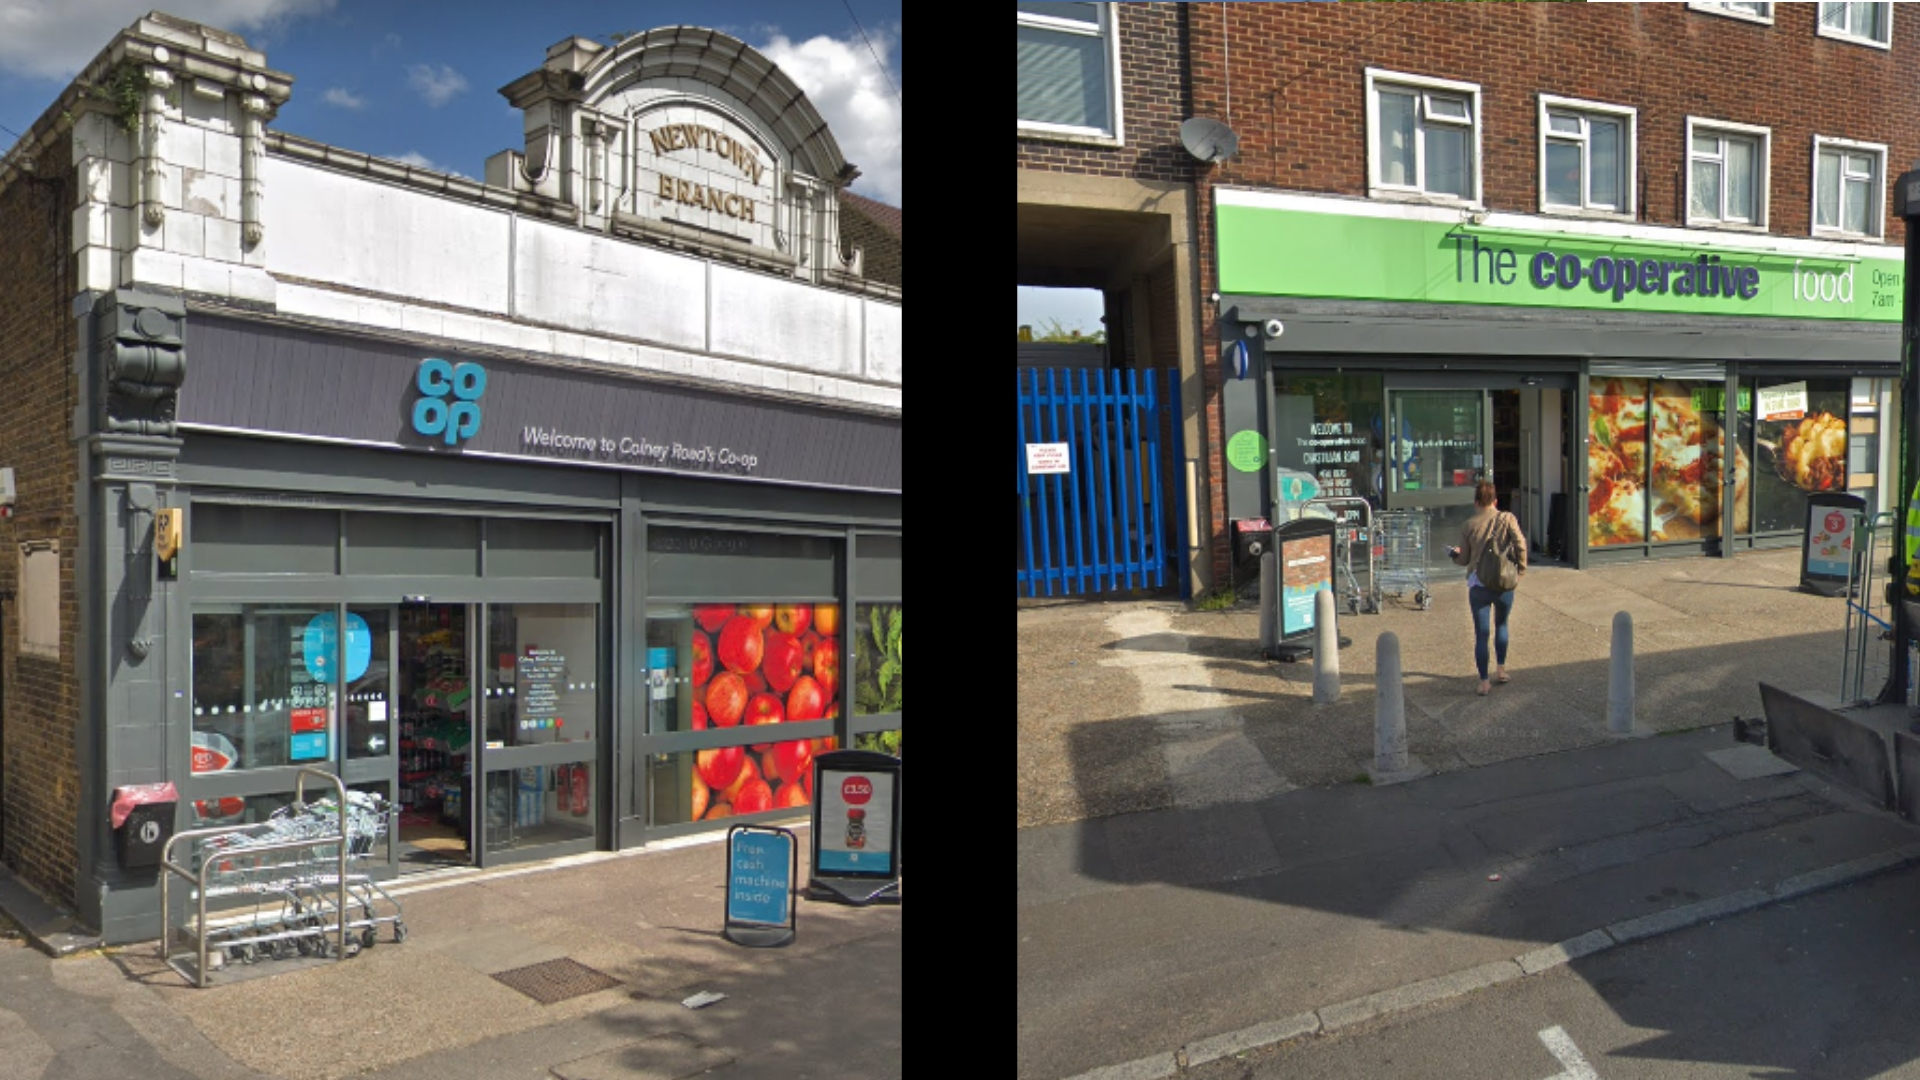 Co-op stores in Colney Road and Chastillian Road